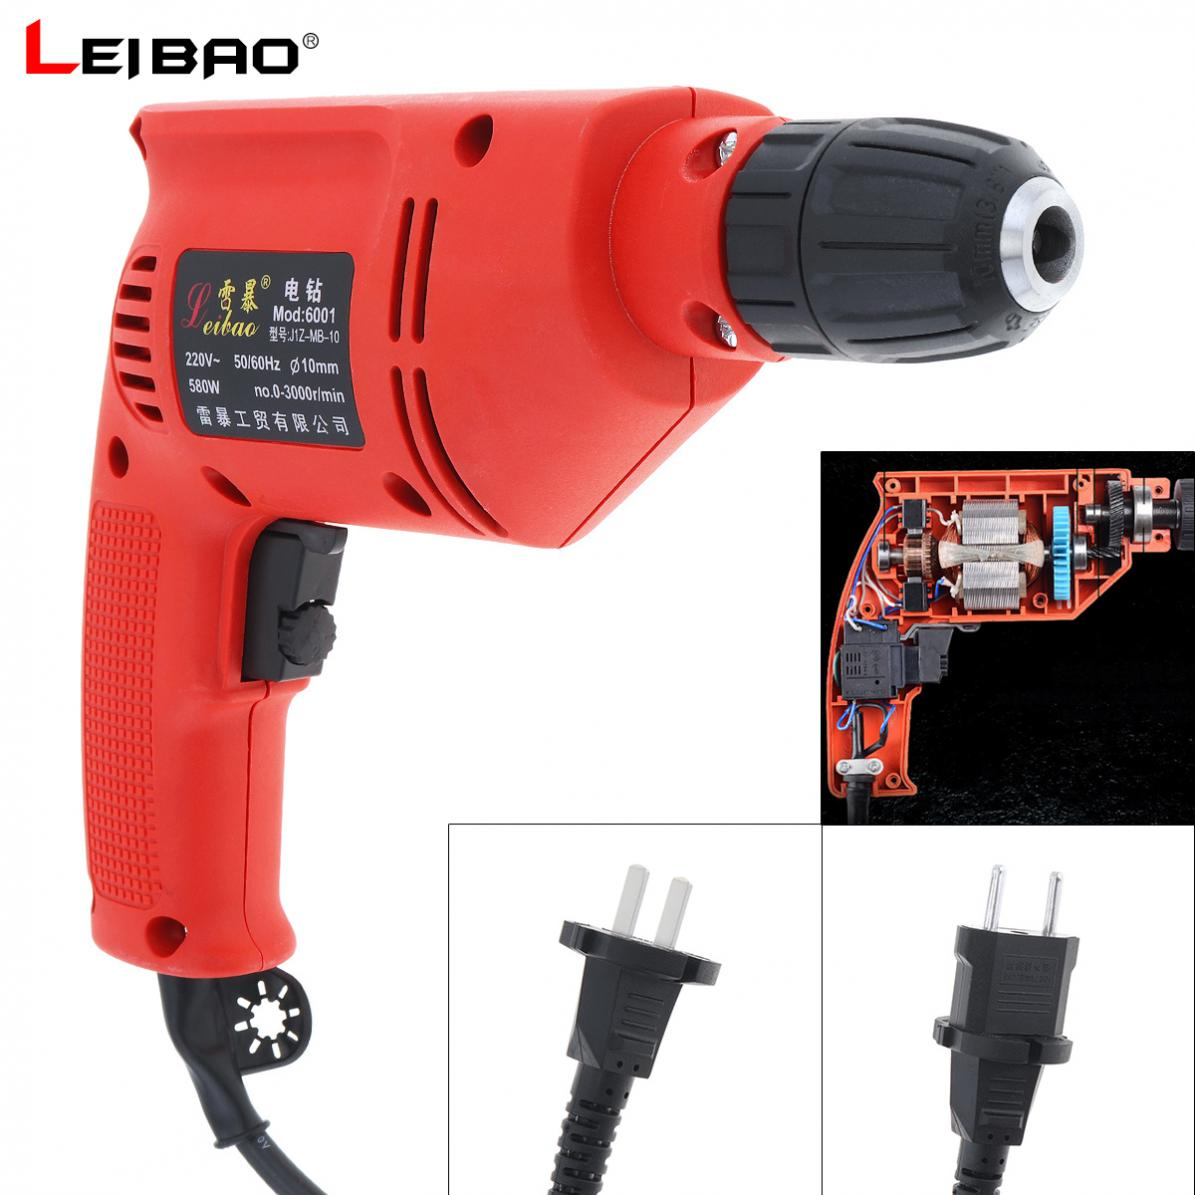 220V 580W 10A Multifunction Handheld Impact Electric Drill Tool With Rotation Adjustment Switch And 10mm Drill Chuck Household